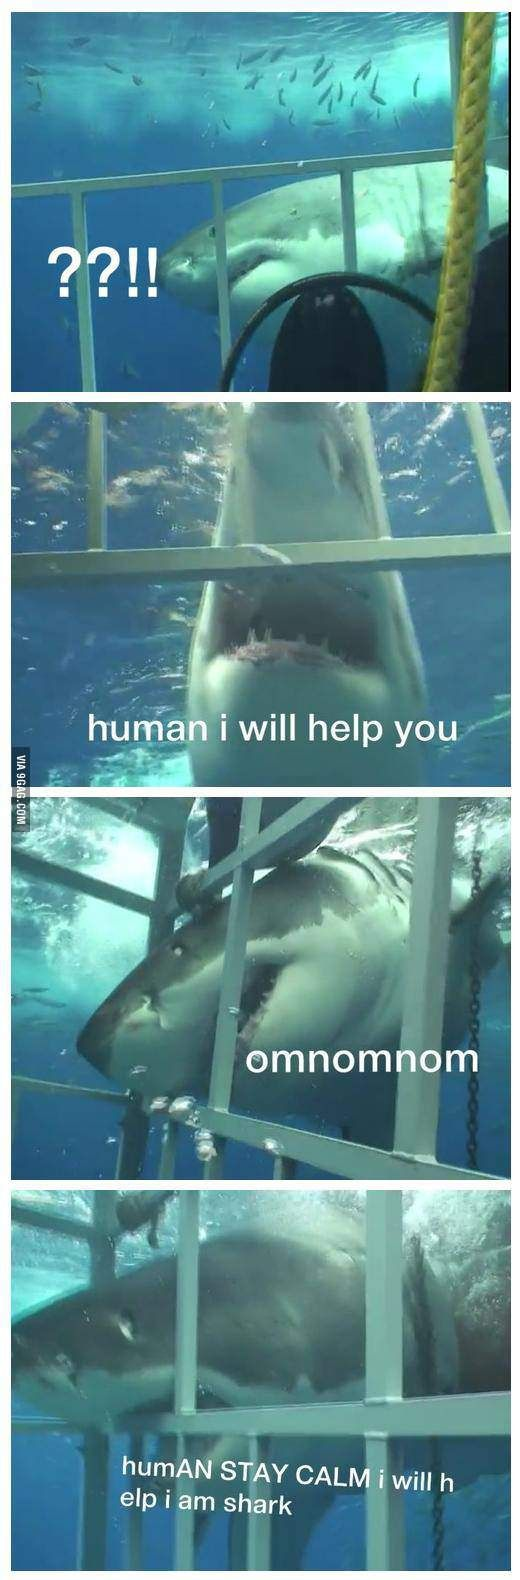 Human why are you in cage? Why are pictures of sharks with witty captions so funny to me?